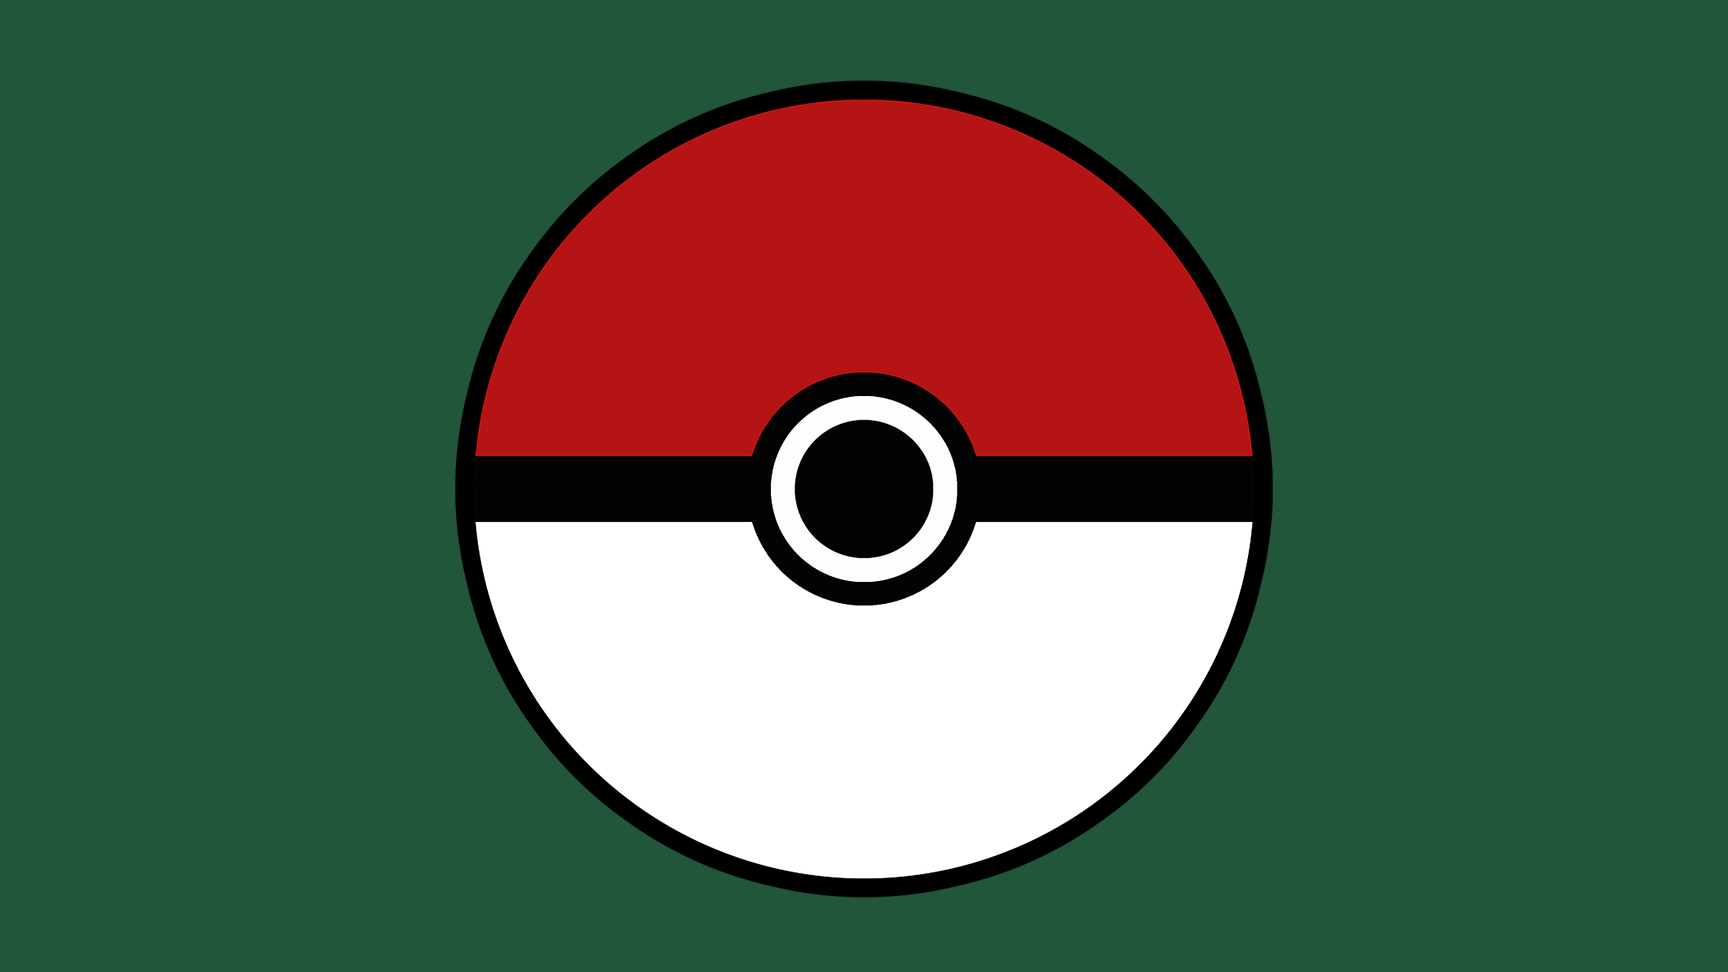 Pokeball on a Green Background